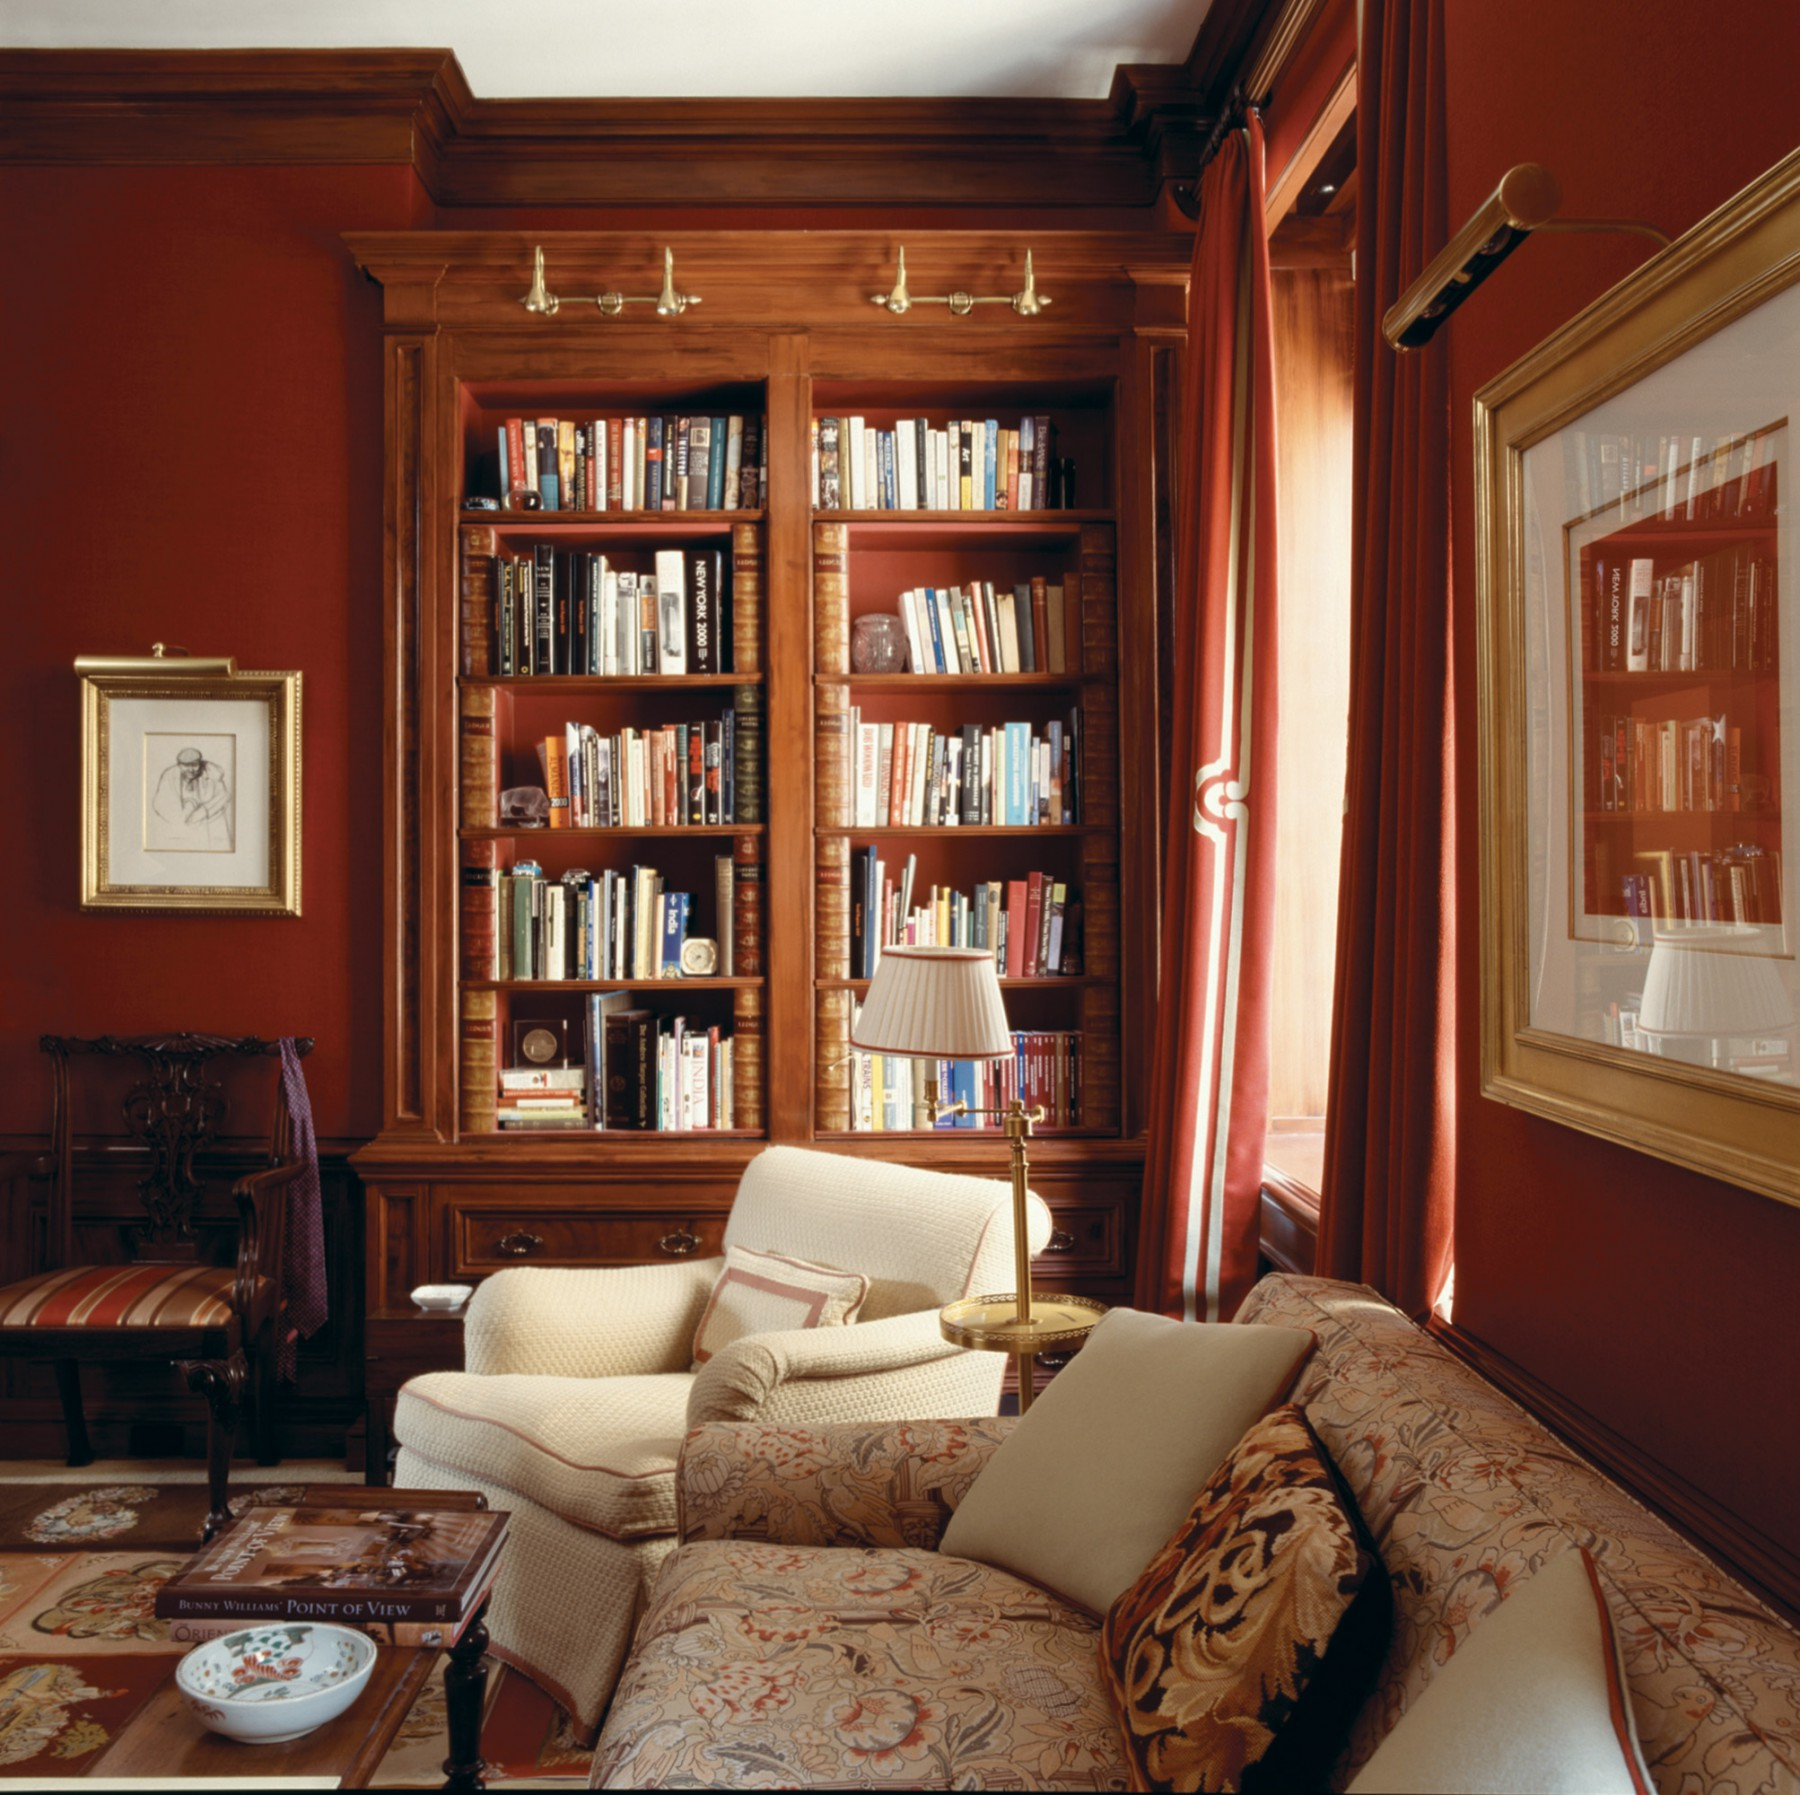 Park Avenue apartment library setting